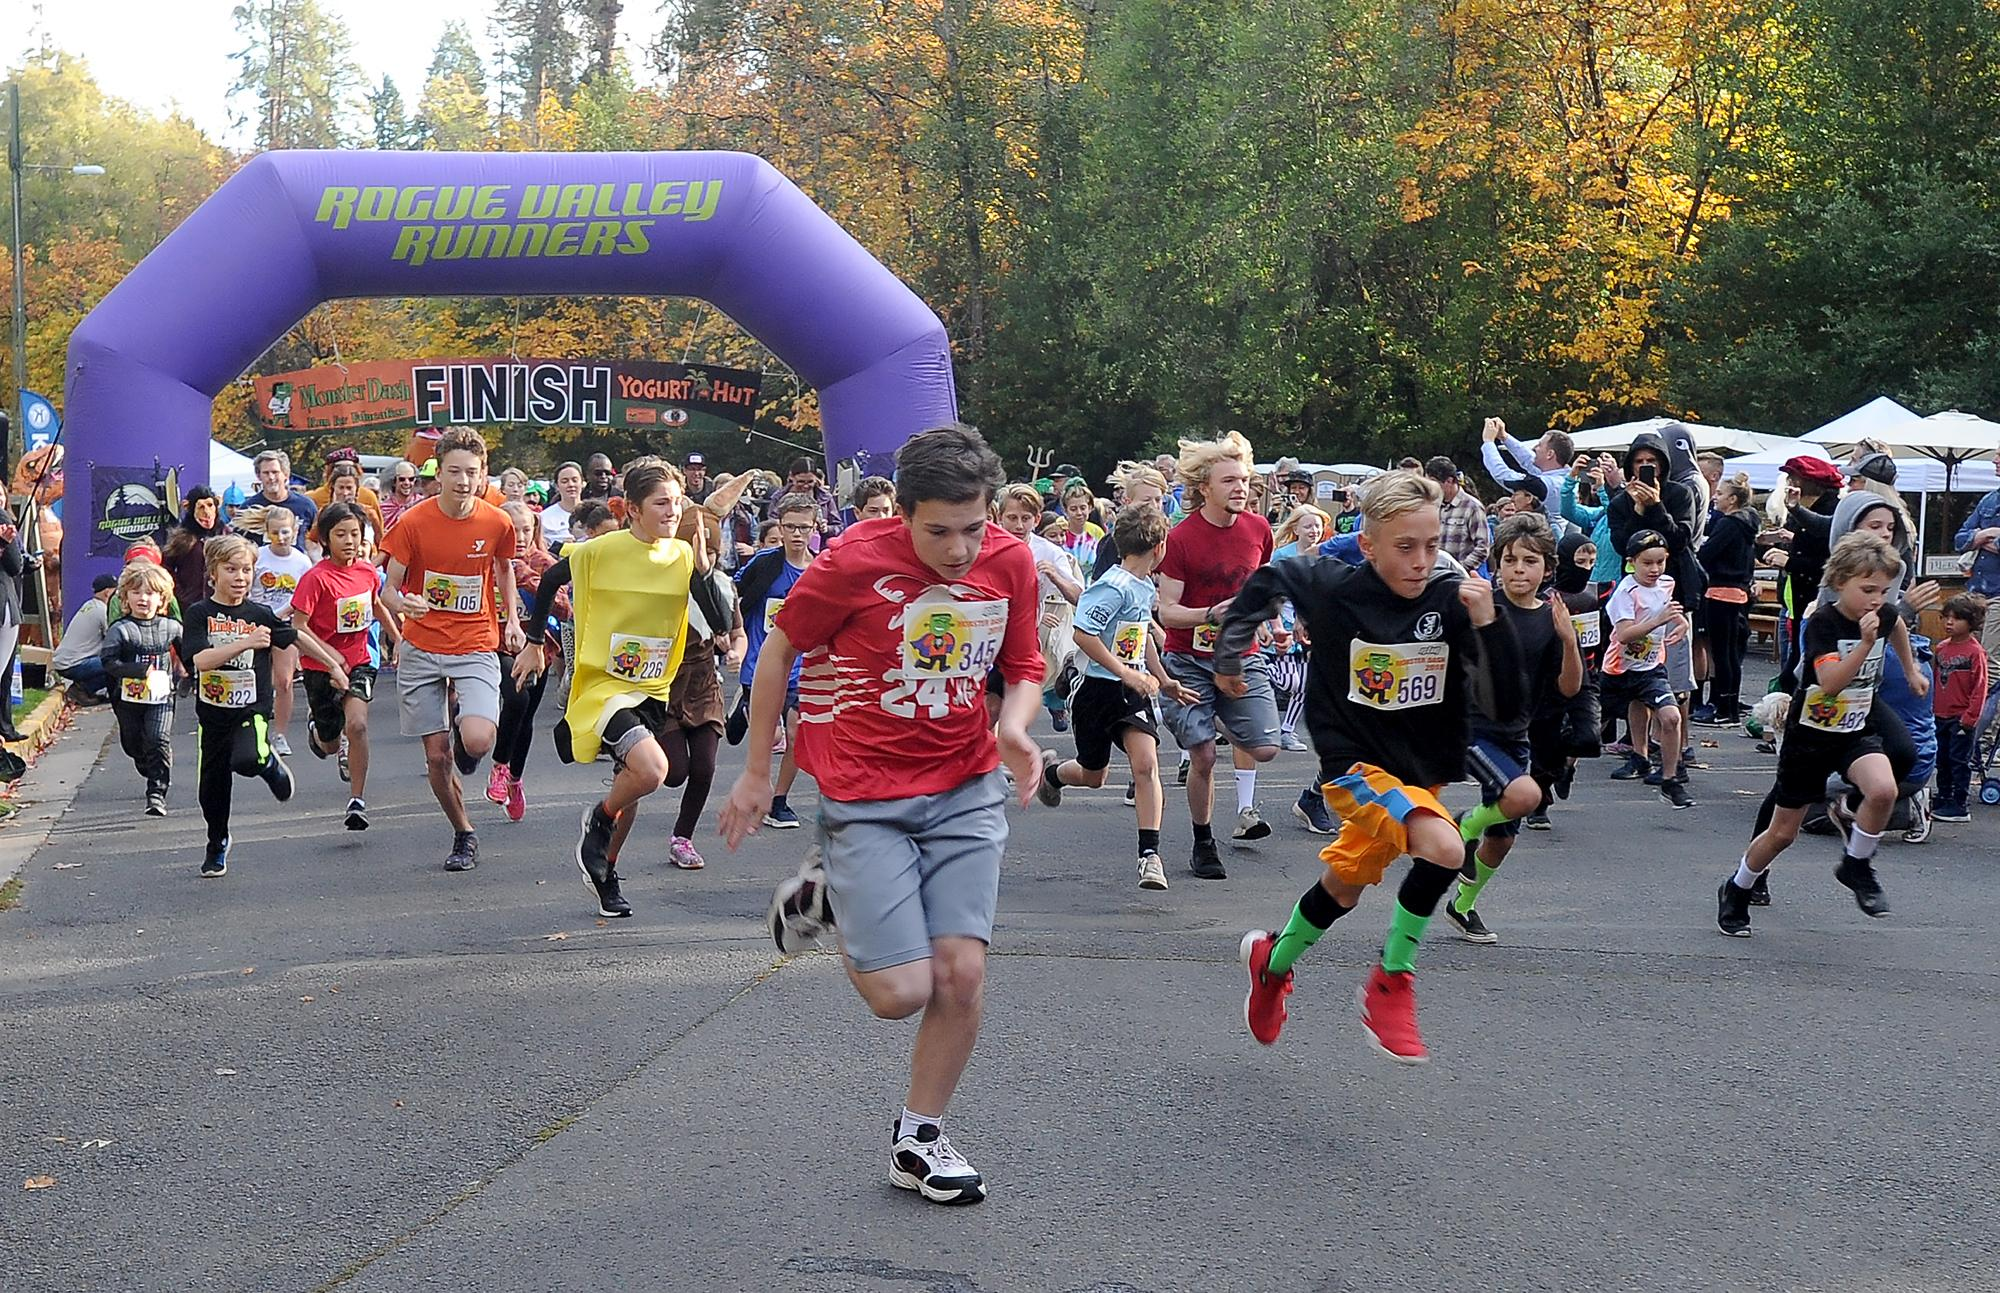 Runners pack the start of the 2k Monster Dash race benefiting the Ashland Schools Foundation Saturday in Lithia park. Photo by Denise Baratta